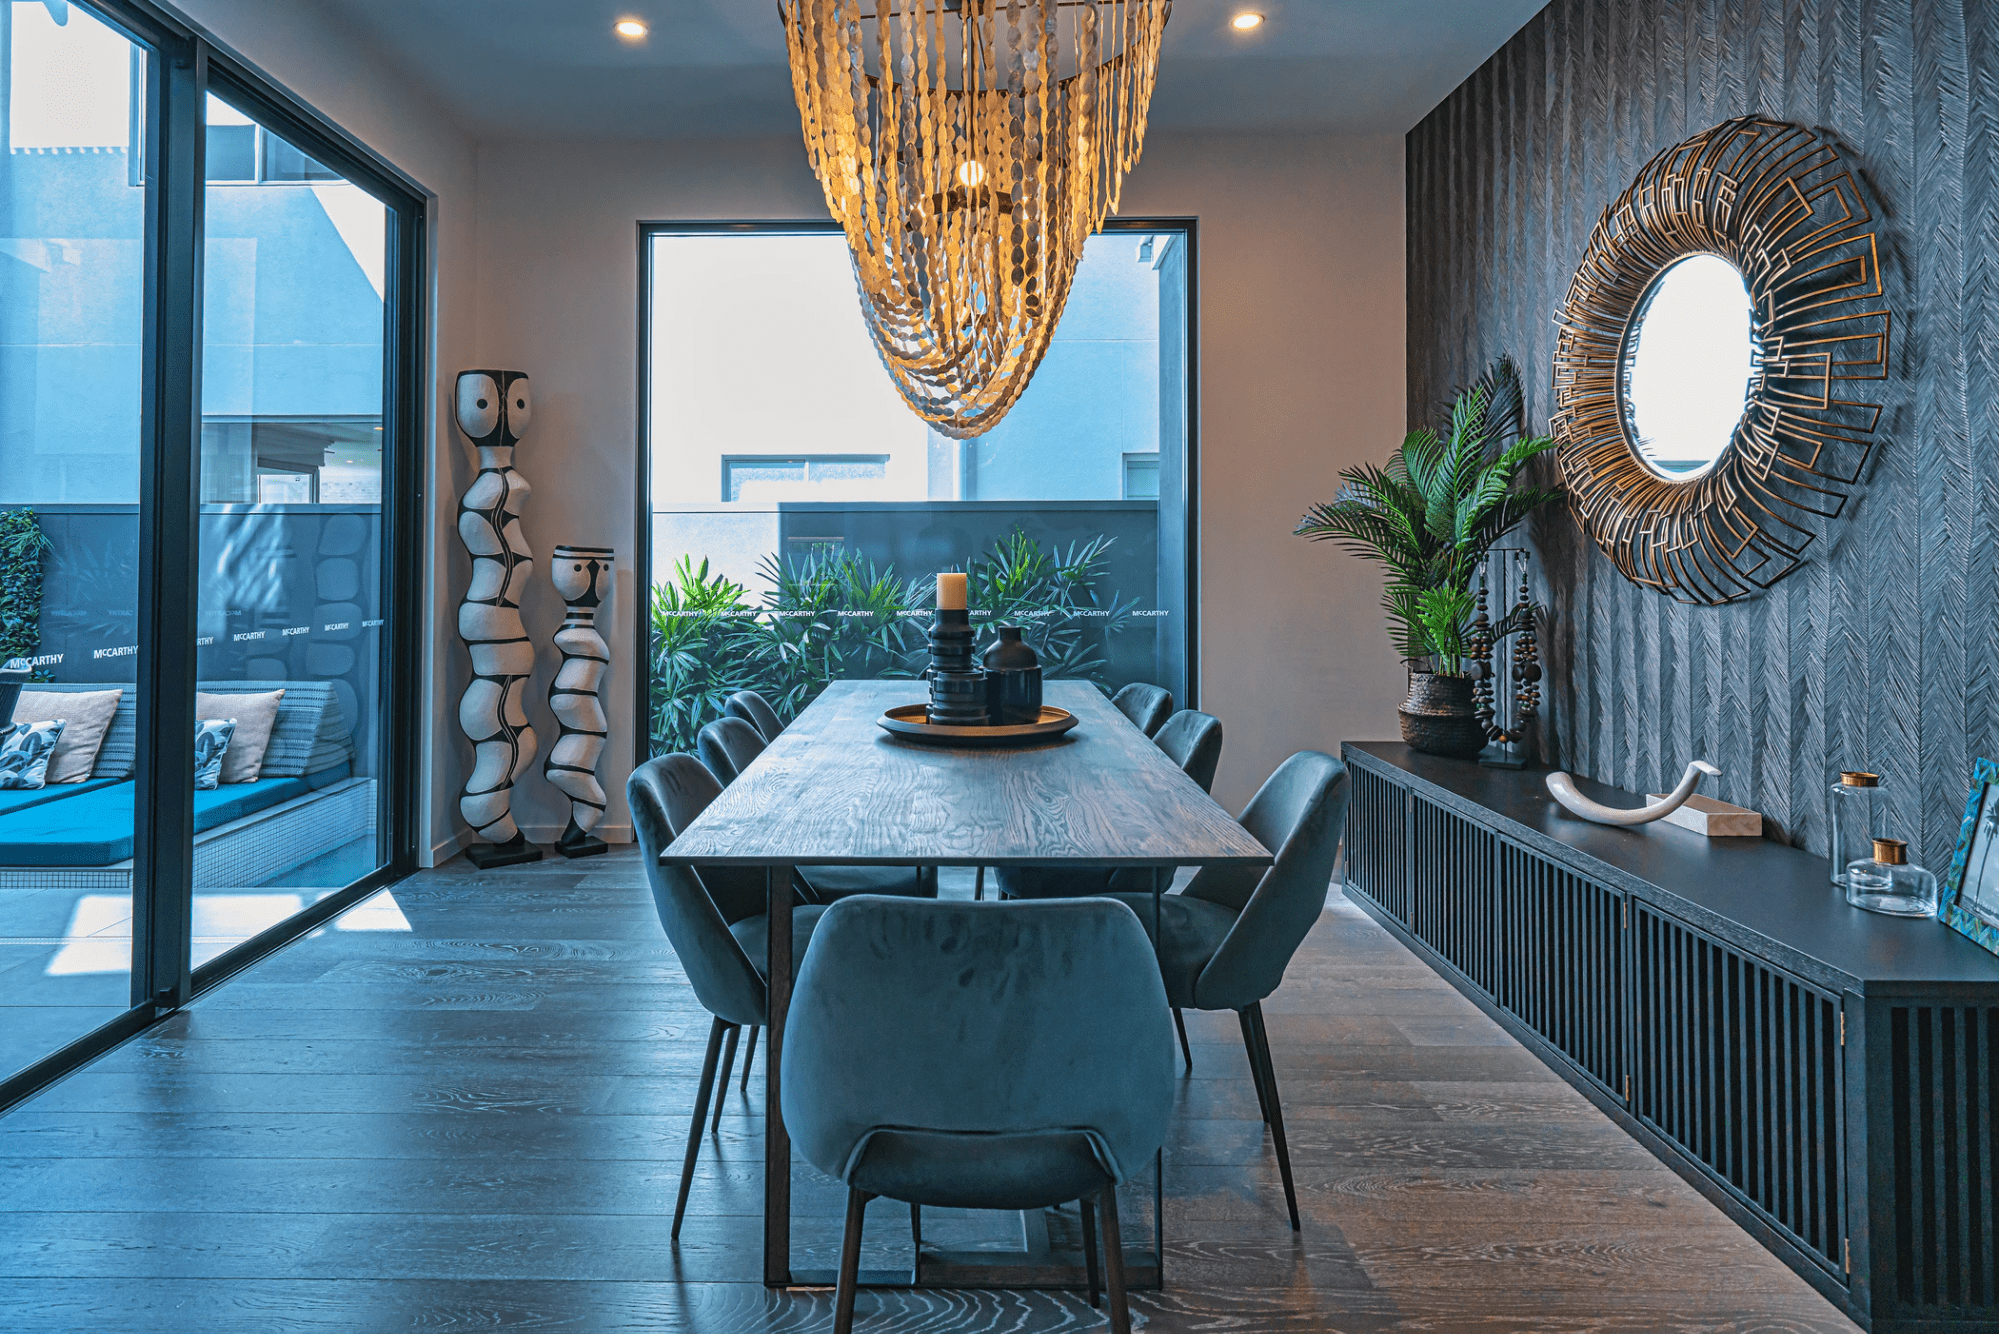 Modern dining room design with eclectic decorations